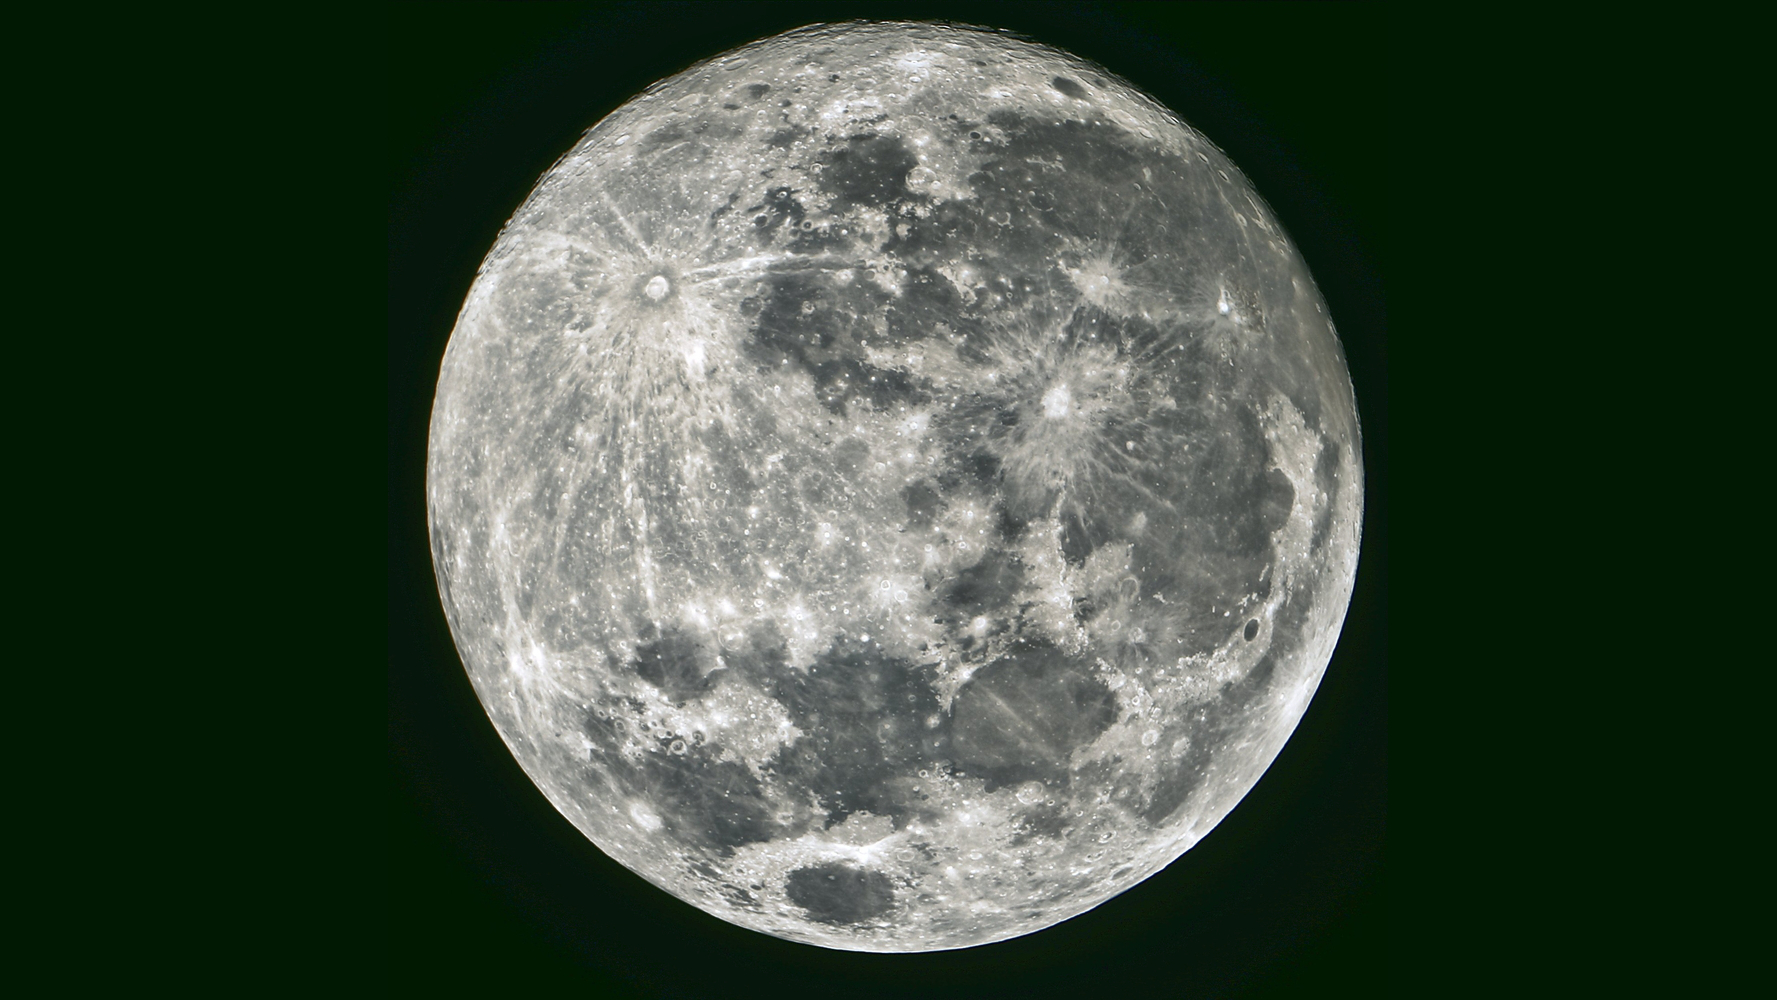 Why The Same Side Of The Moon Always Faces The Earth